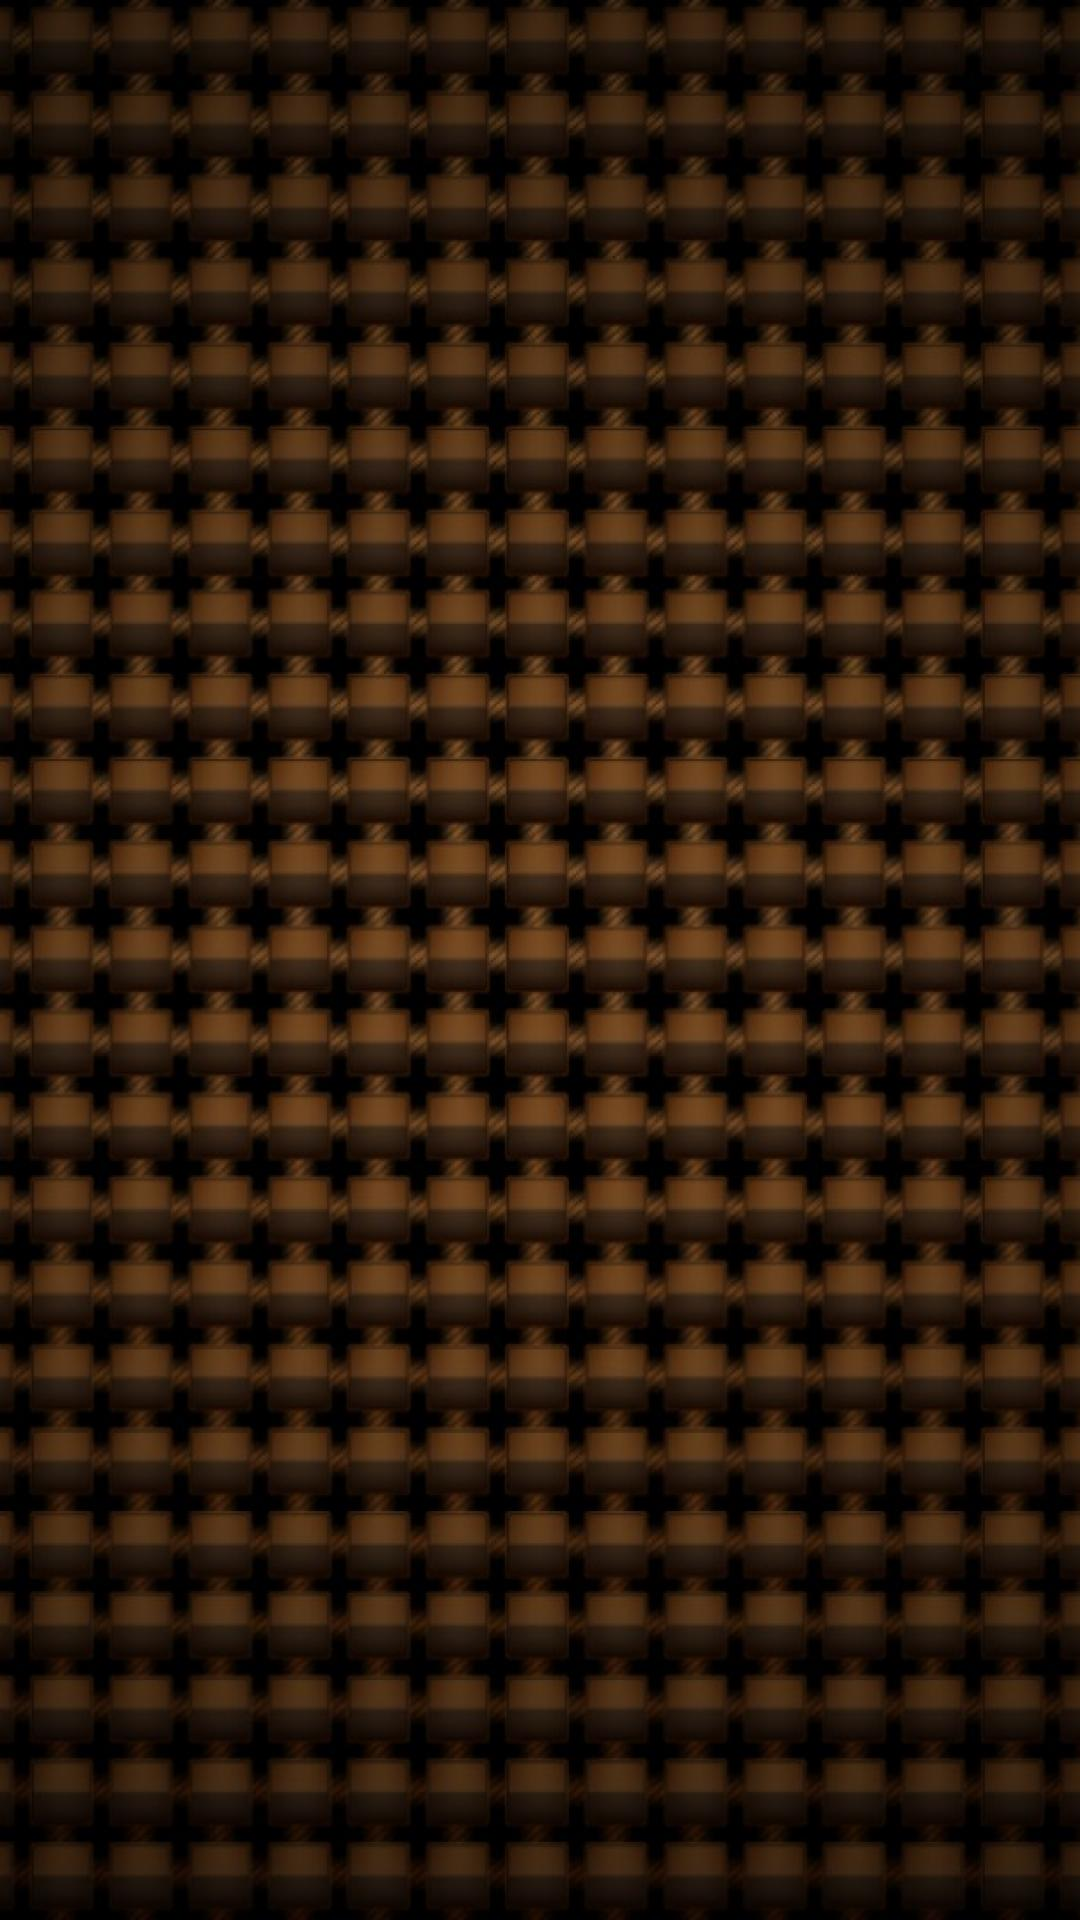 1080x1920 Carbon Fiber iPhone Wallpaper HD | PixelsTalk.Net